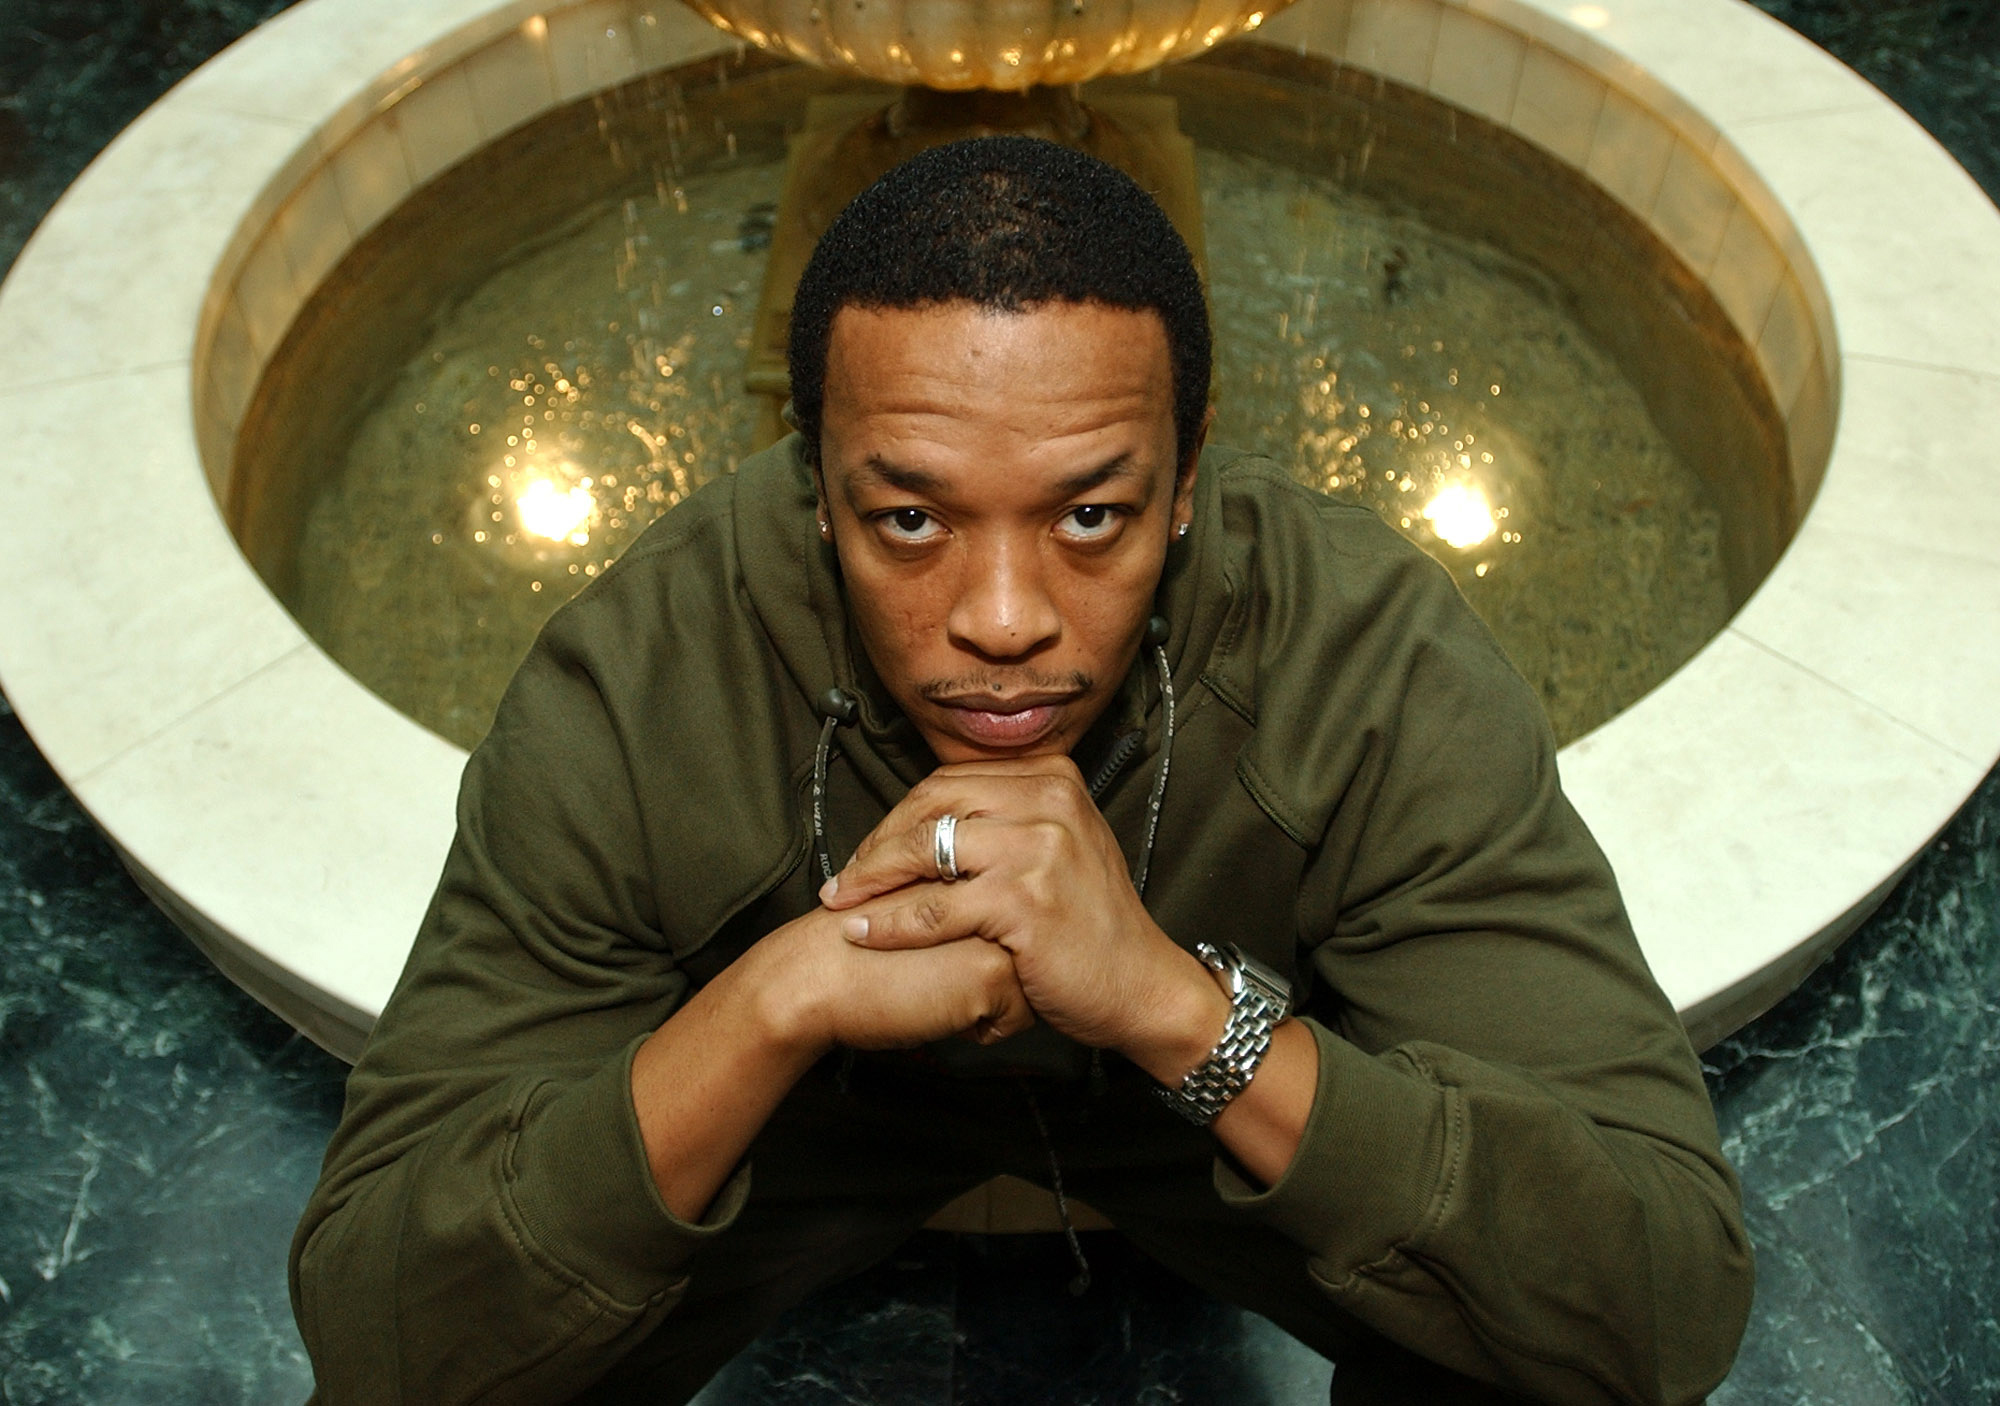 Rap legend Dr. Dre is photographed at Le Meridien Hotel in Beverly Hills, Calif. on Nov. 12, 2001.